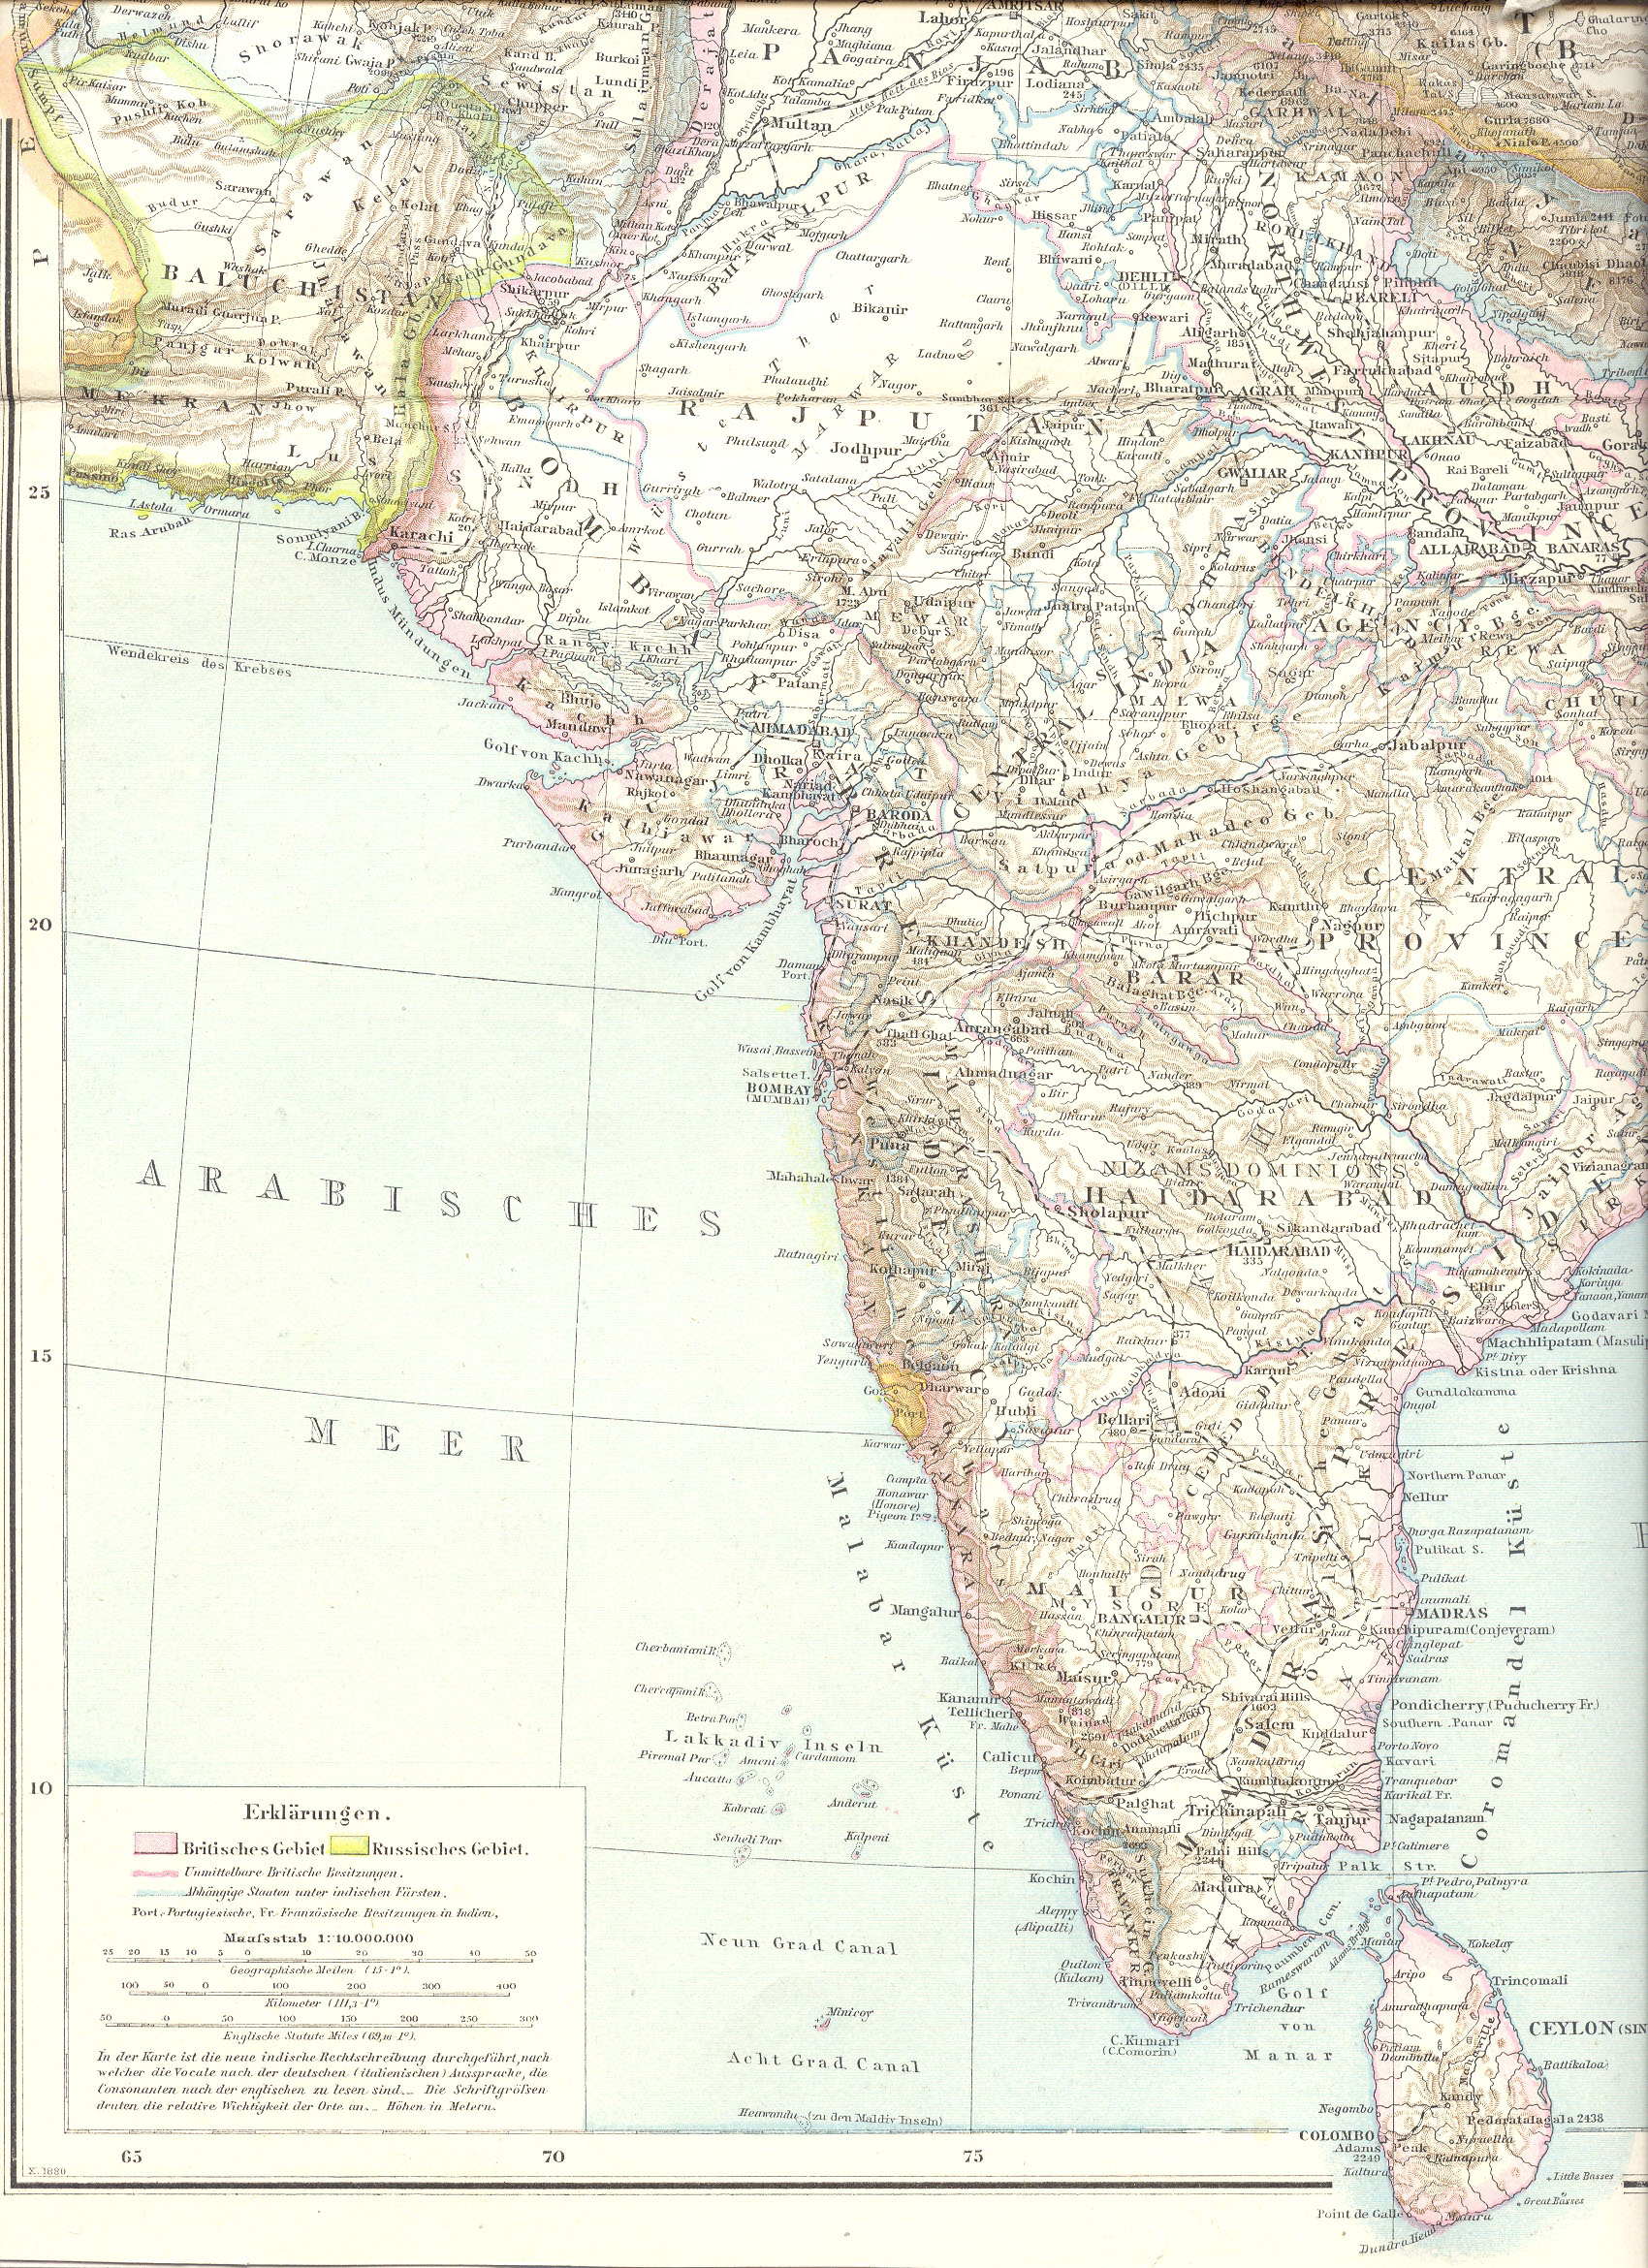 filecentral and south asia from the first edition of the allgemeiner hand